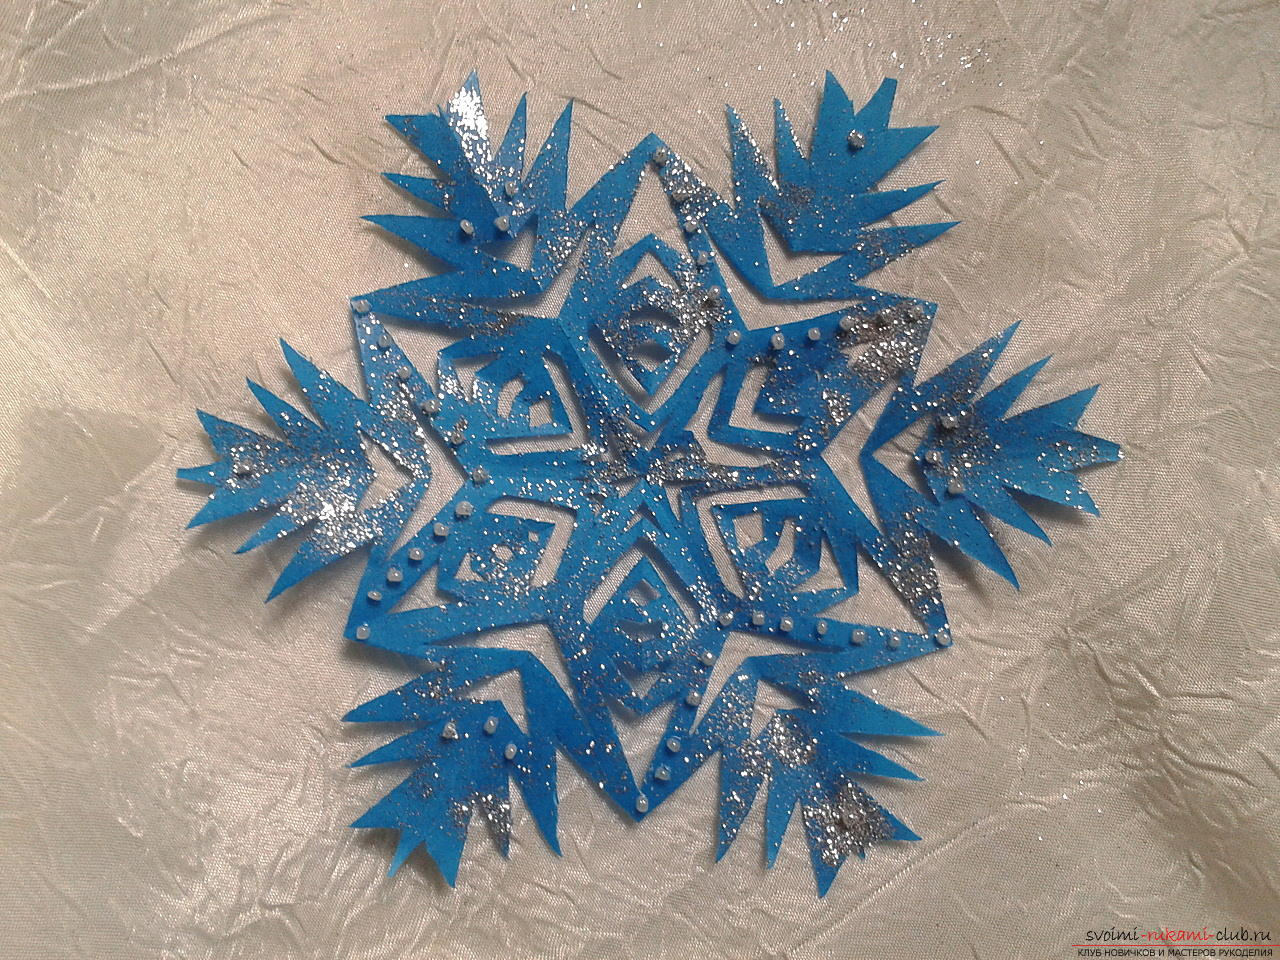 Photo to the lesson on creating a New Year's paper snowflake. Photo number 15